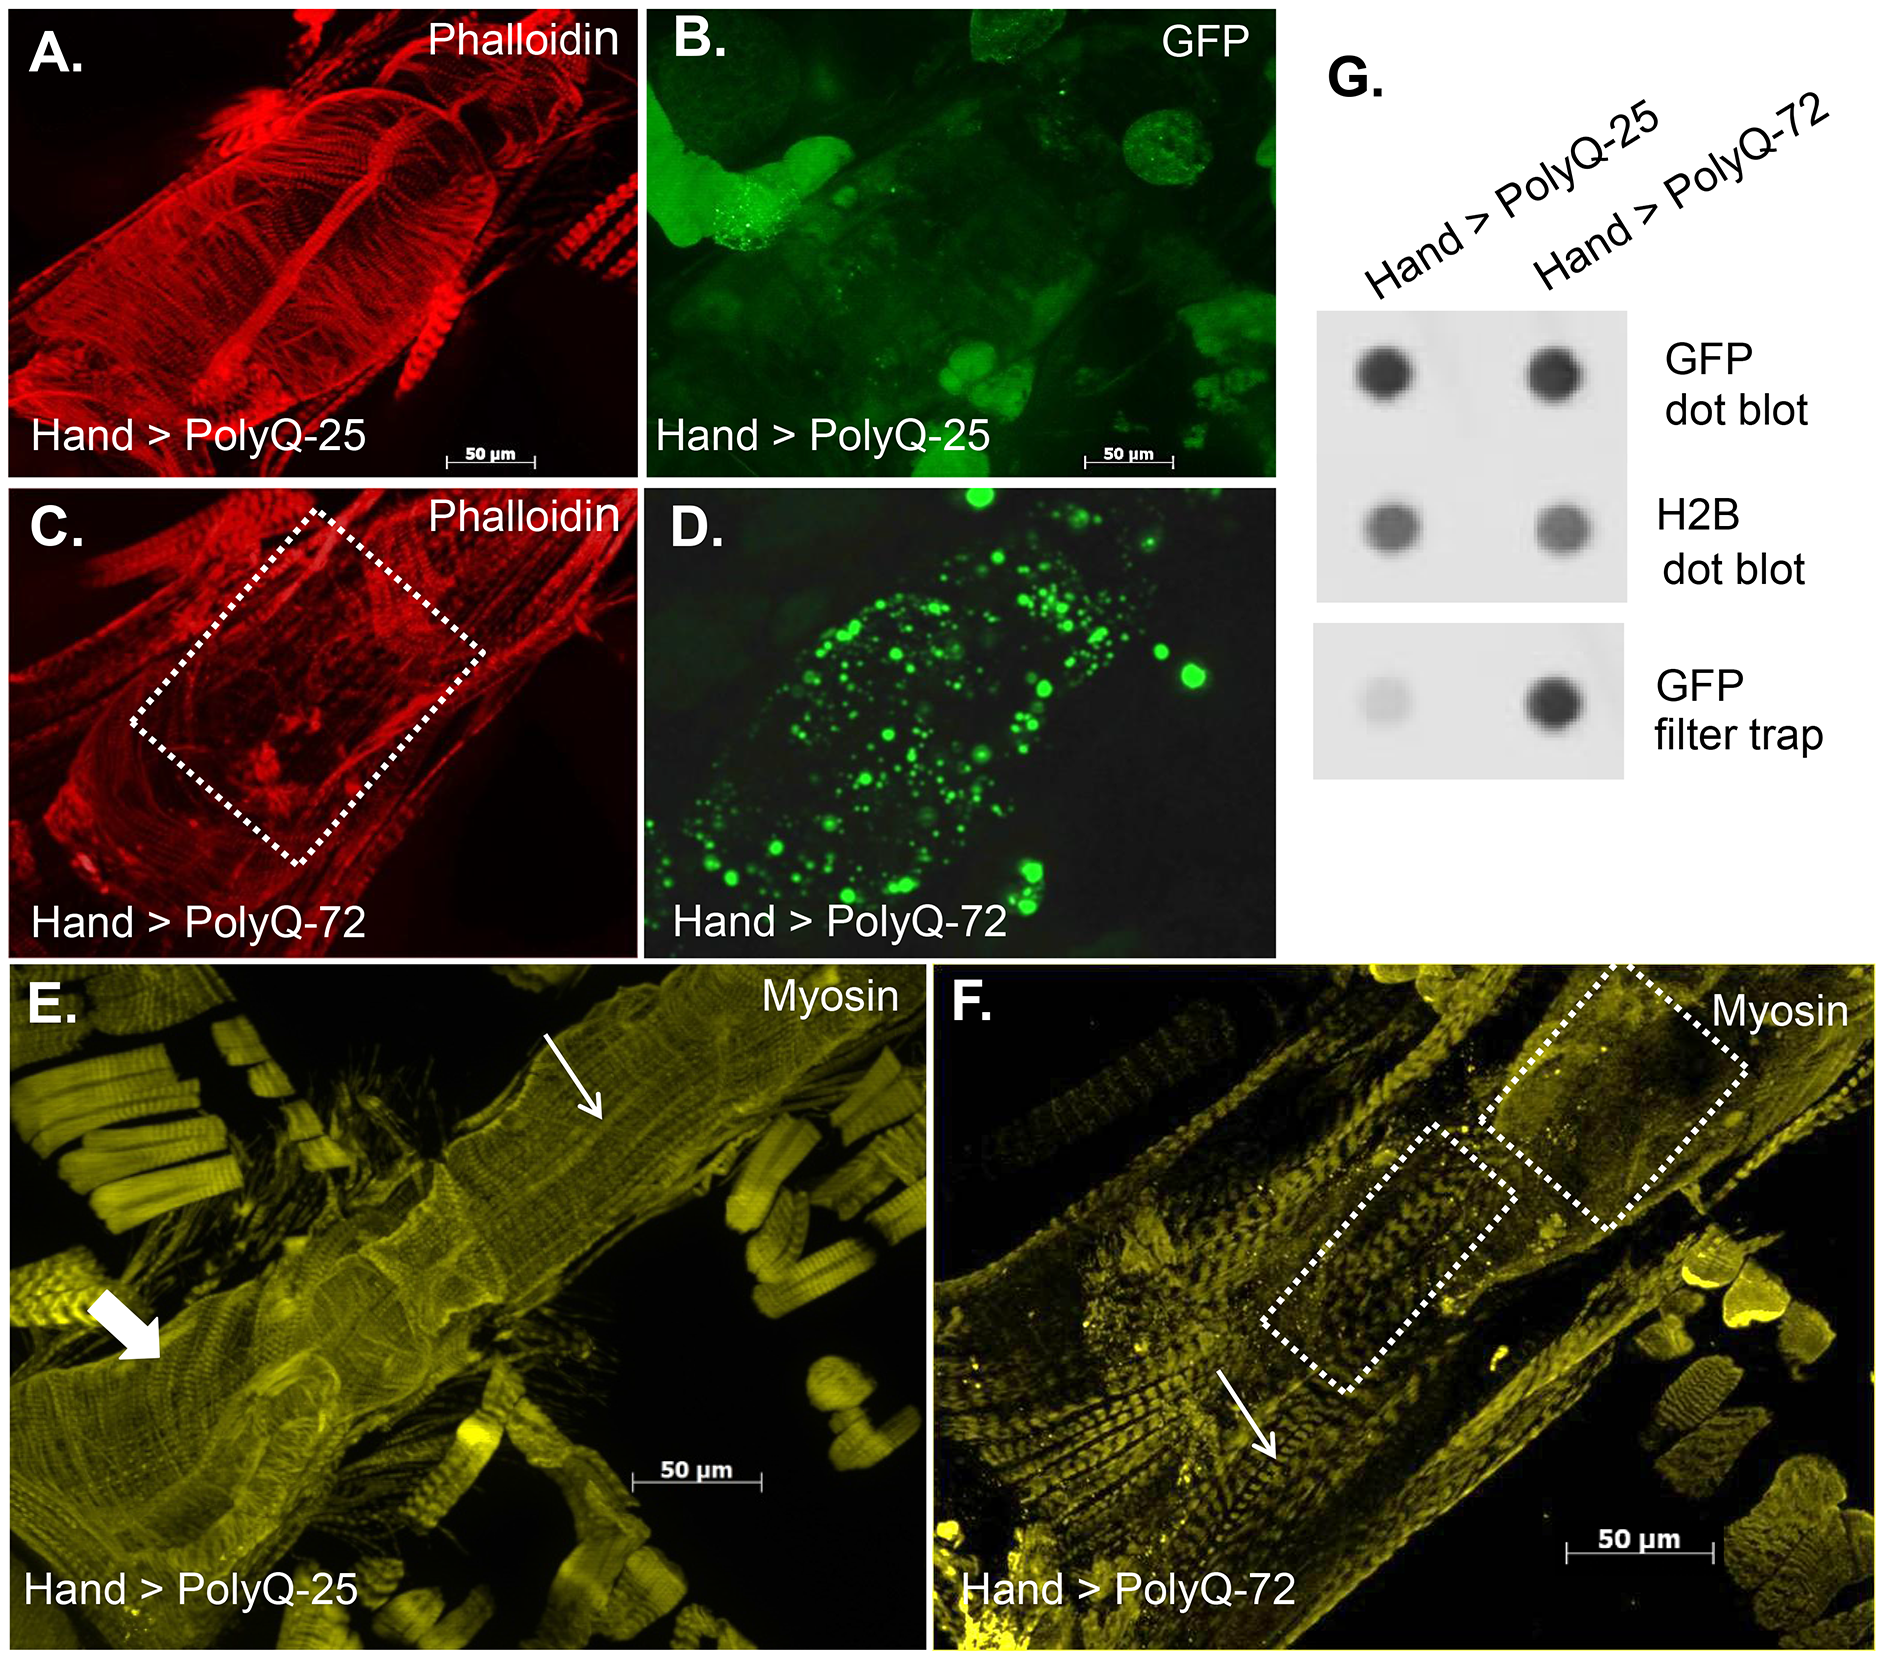 Mutant PolyQ causes structural defects and GFP-positive aggregates in the fly heart.